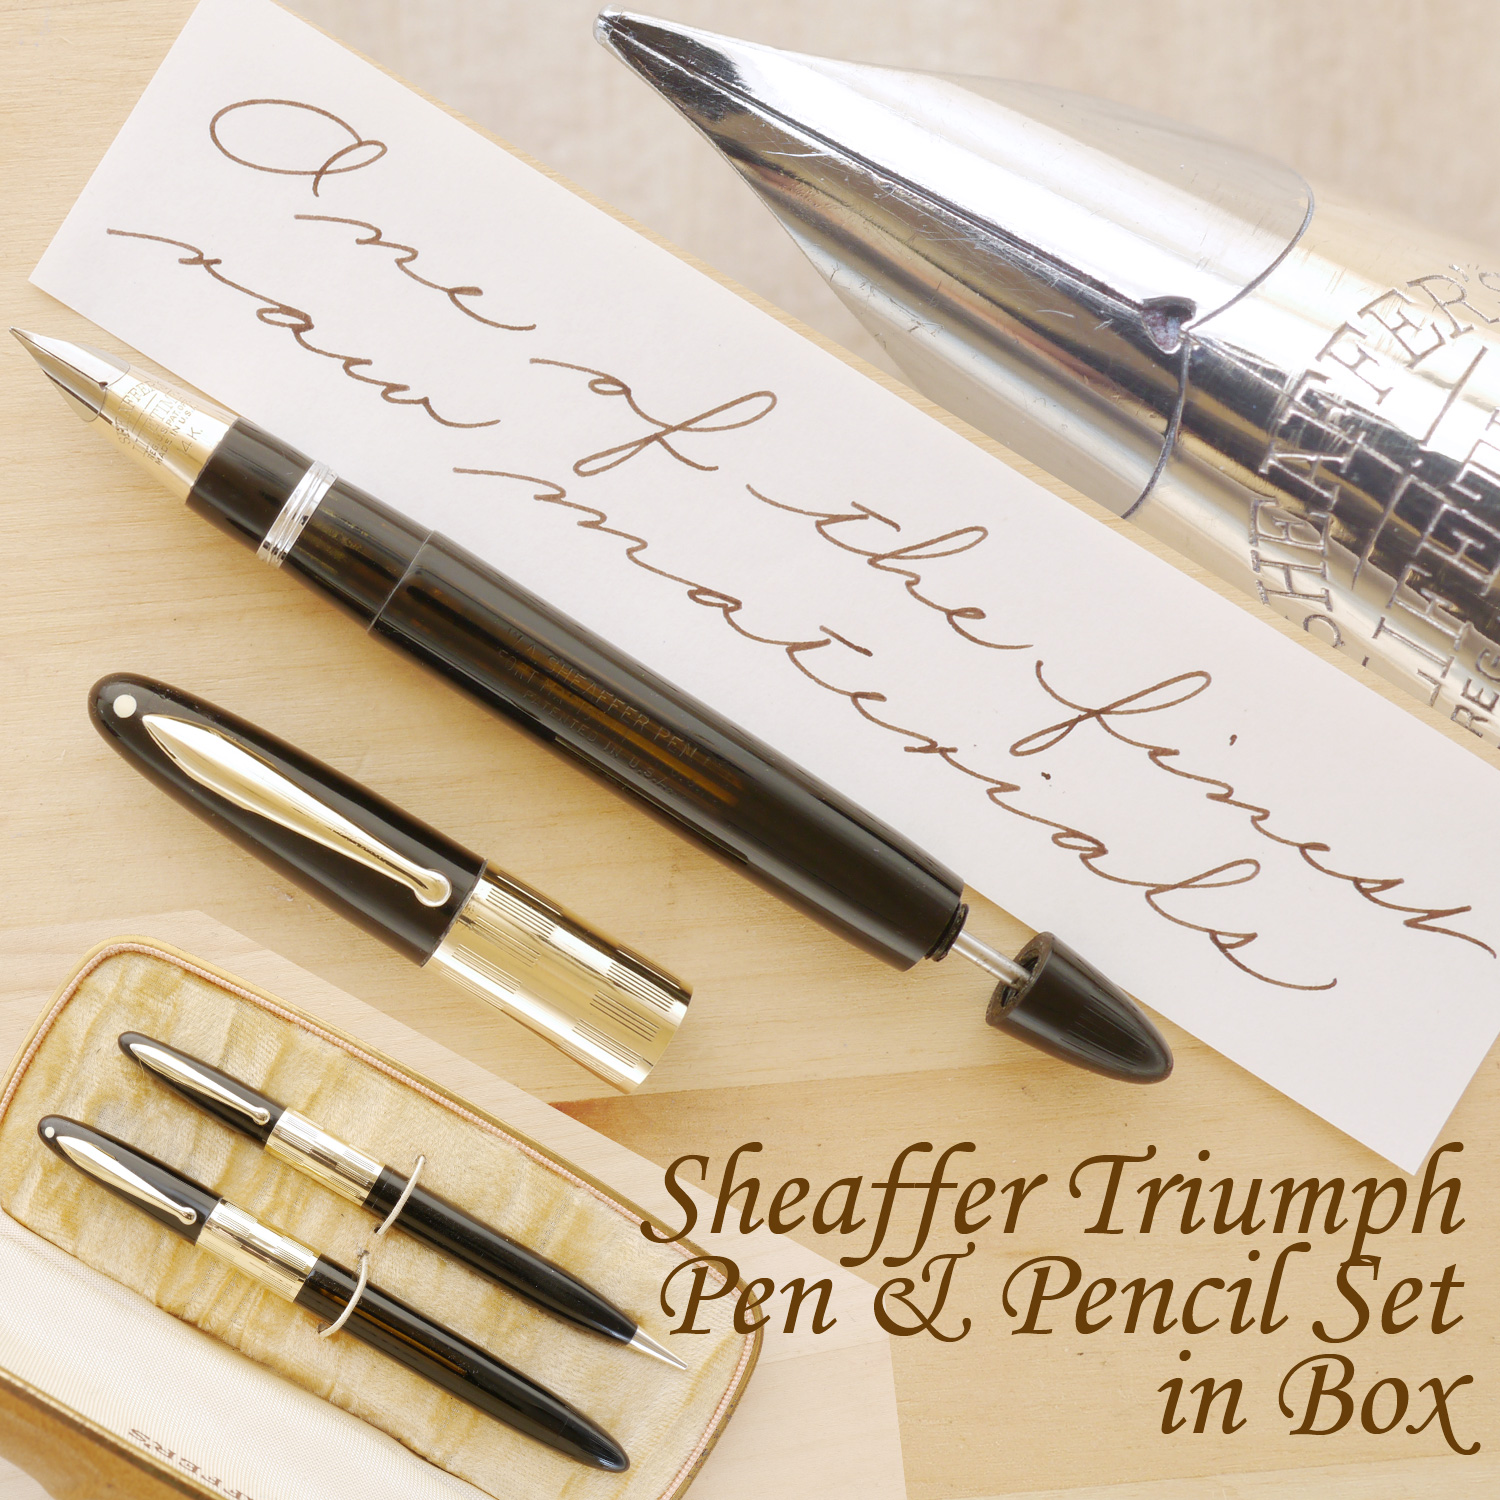 Sheaffer Triumph Vac Fountain Pen and Pencil Set, F, uncapped and with the plunger partially extended